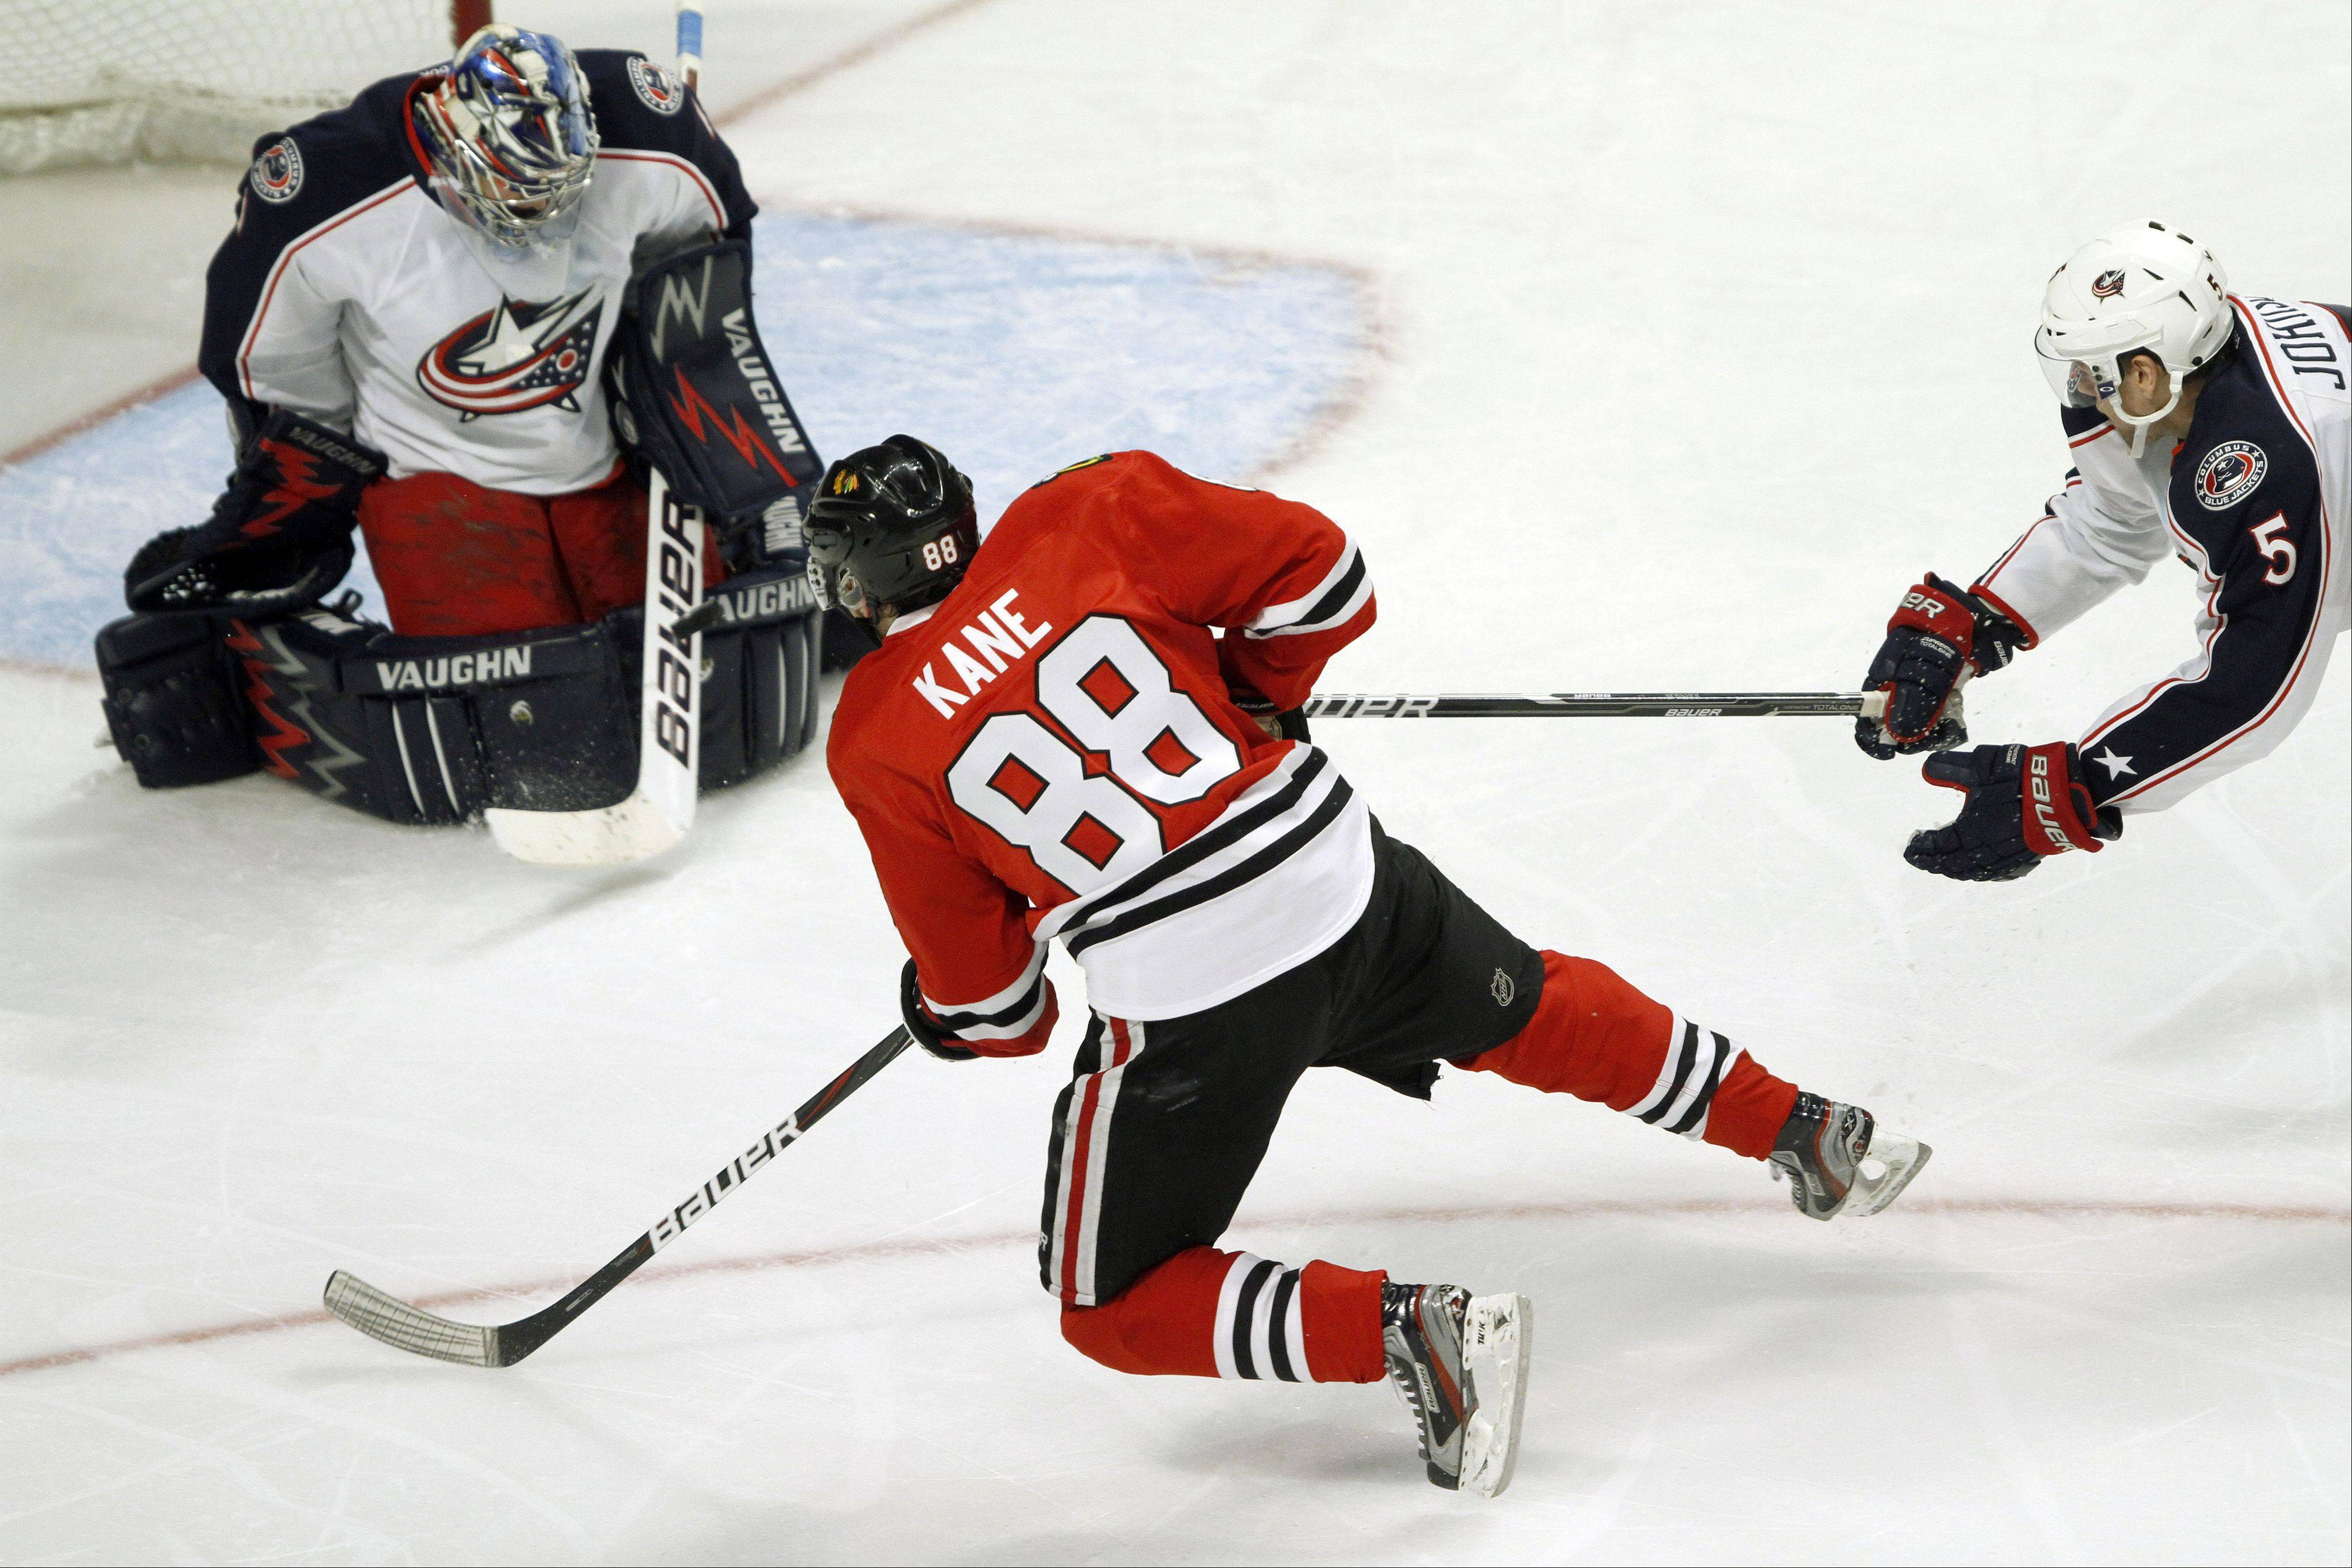 Blackhawks right wing Patrick Kane takes a diving shot on Columbus Blue Jackets goalie Steve Mason in the third period during their game Monday night at the United Center in Chicago.